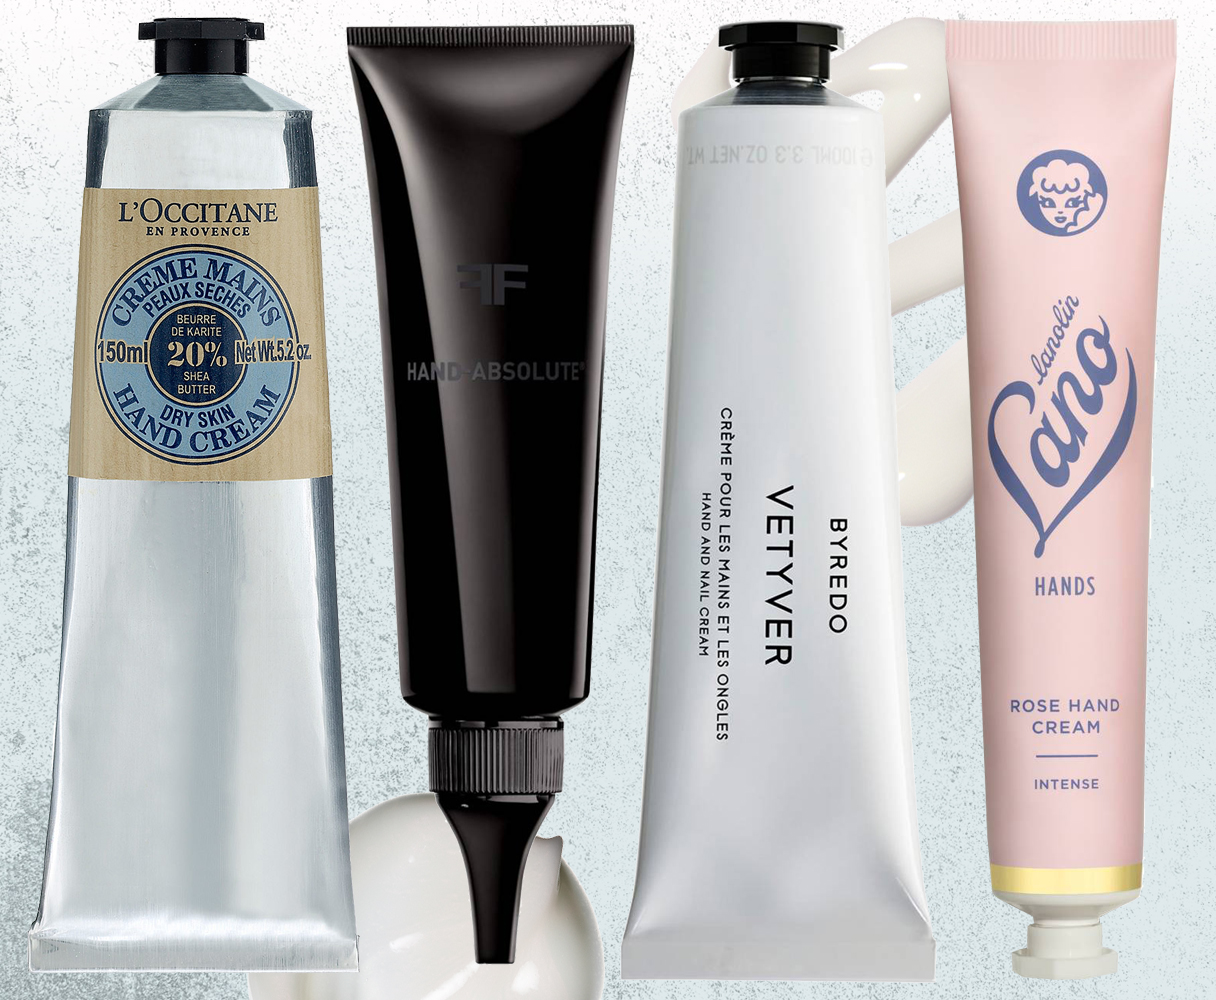 Heavy-Duty Hand Creams for When You Lose Your Winter Gloves